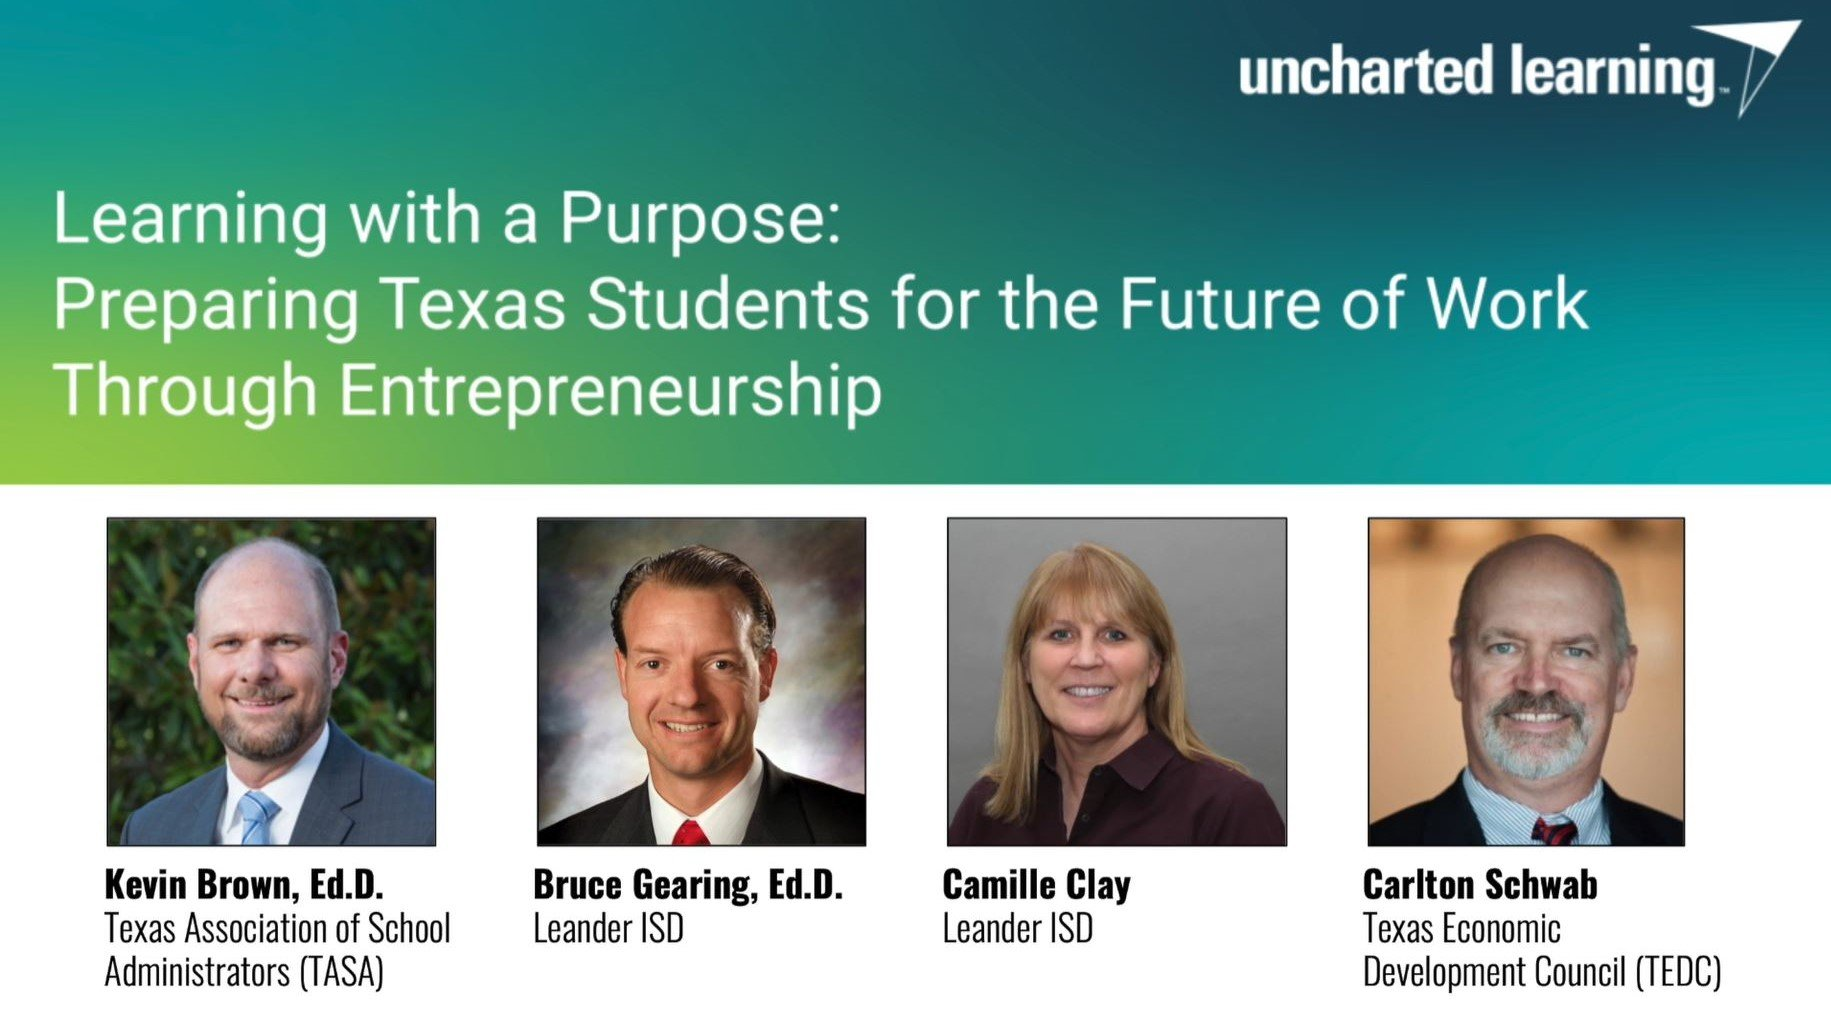 [WEBINAR] Learning with a Purpose - Preparing Texas Students for the Future of Work Through Entrepreneurship